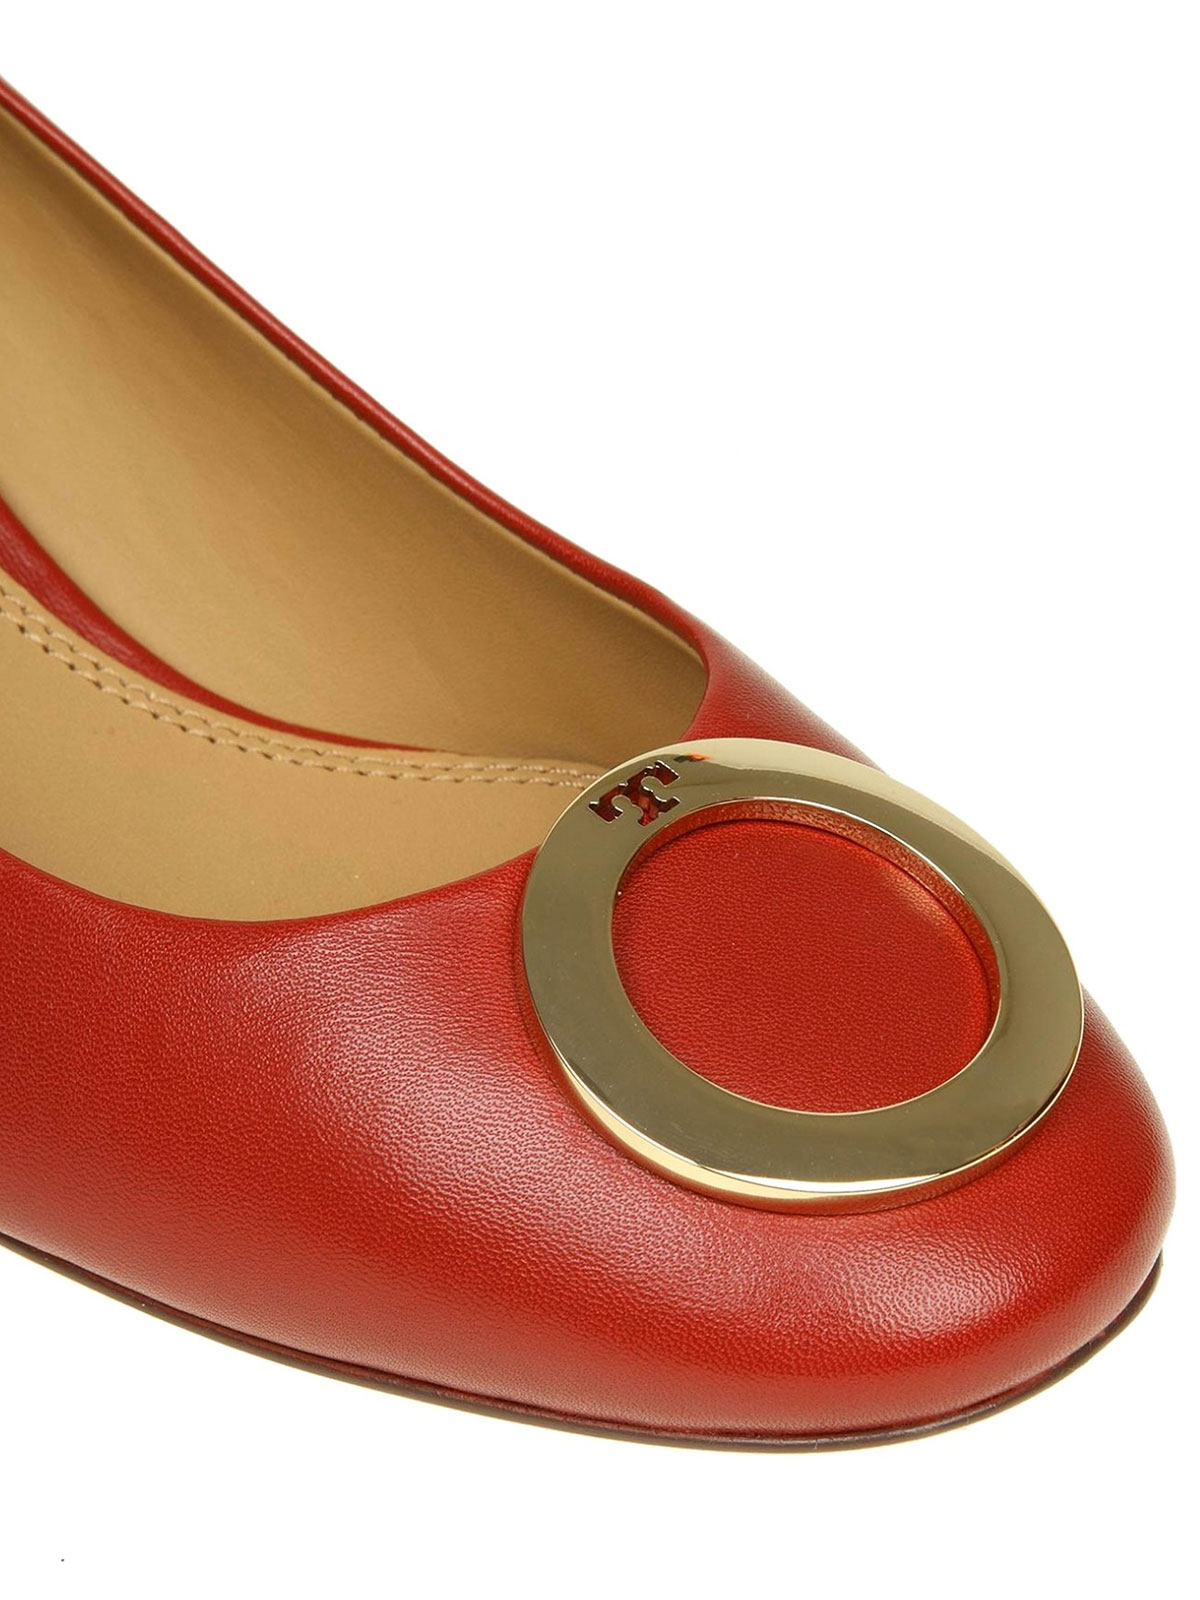 b3f1b6619d2d iKRIX TORY BURCH  court shoes - Caterina metal logo detailed leather pumps